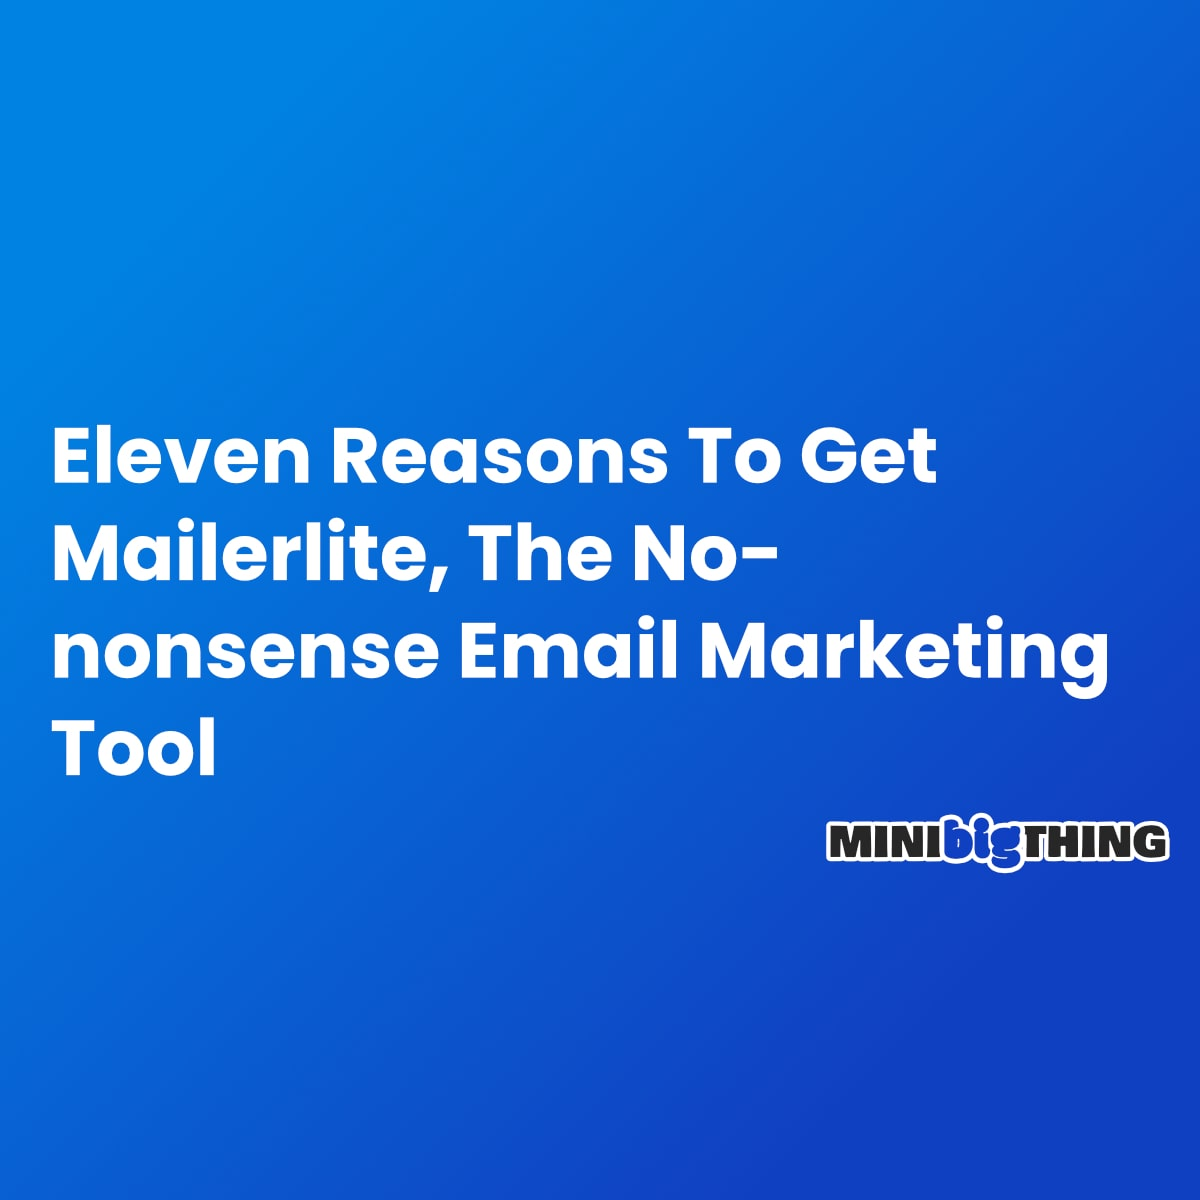 Eleven Reasons To Get Mailerlite, The No Nonsense Email Marketing Tool With A Great Free Plan And Heaps Of Functionality